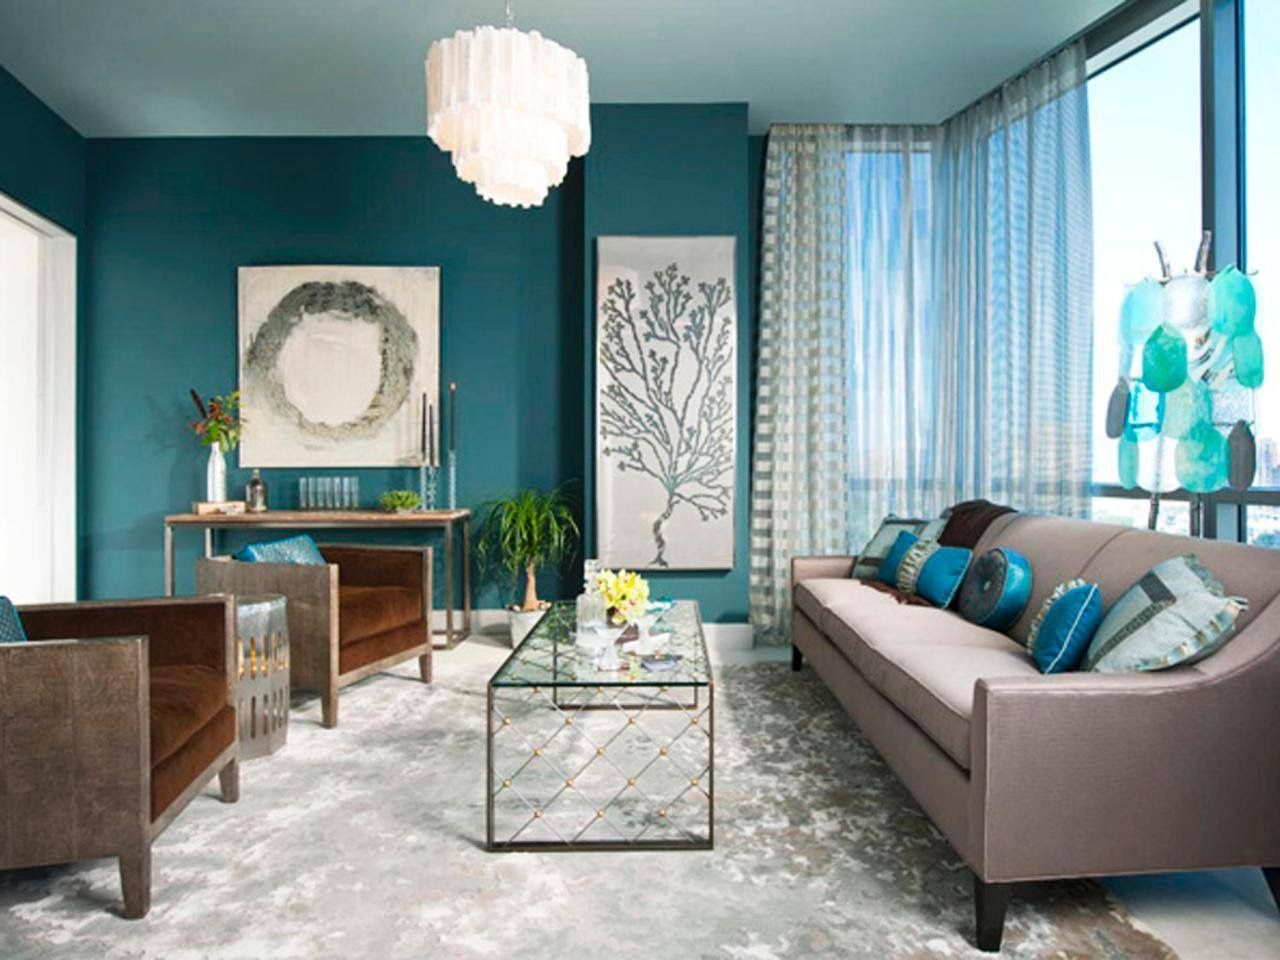 Pin By Renee Sterling On Home Designs Teal Living Rooms Living Room Turquoise Living Room Grey #turquoise #accessories #for #living #room